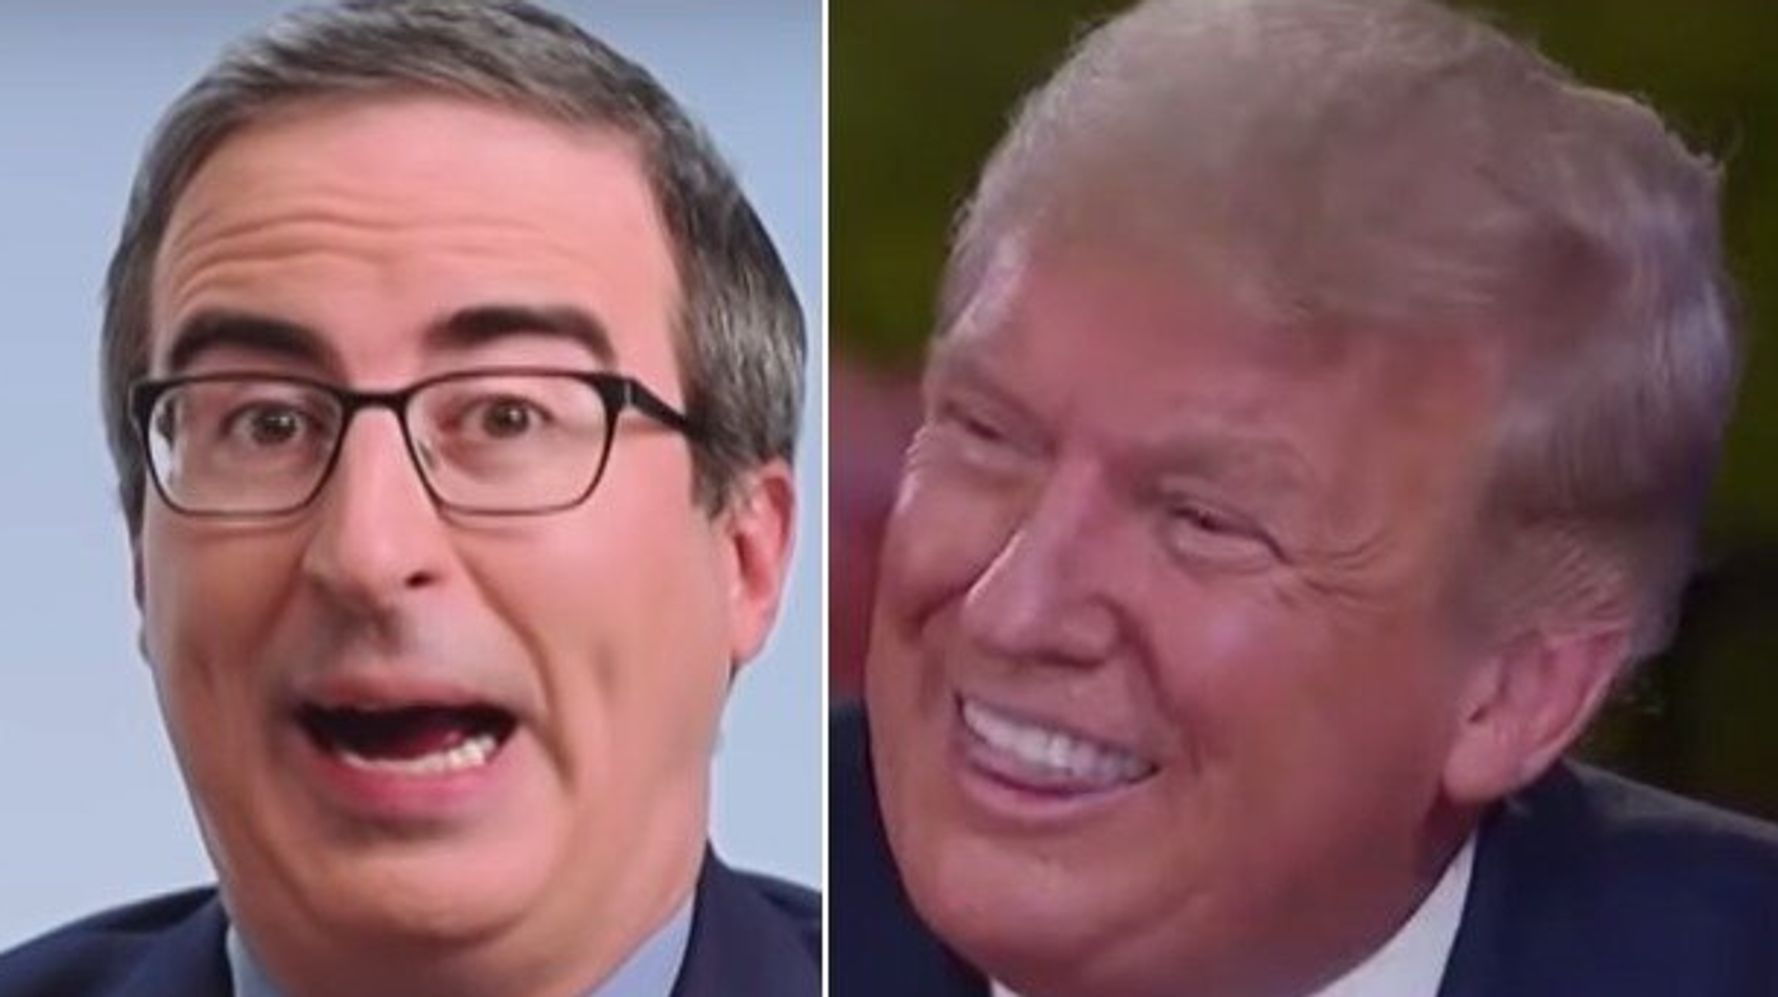 John Oliver Gives Trump's Smile Some New Descriptions You May Never Forget